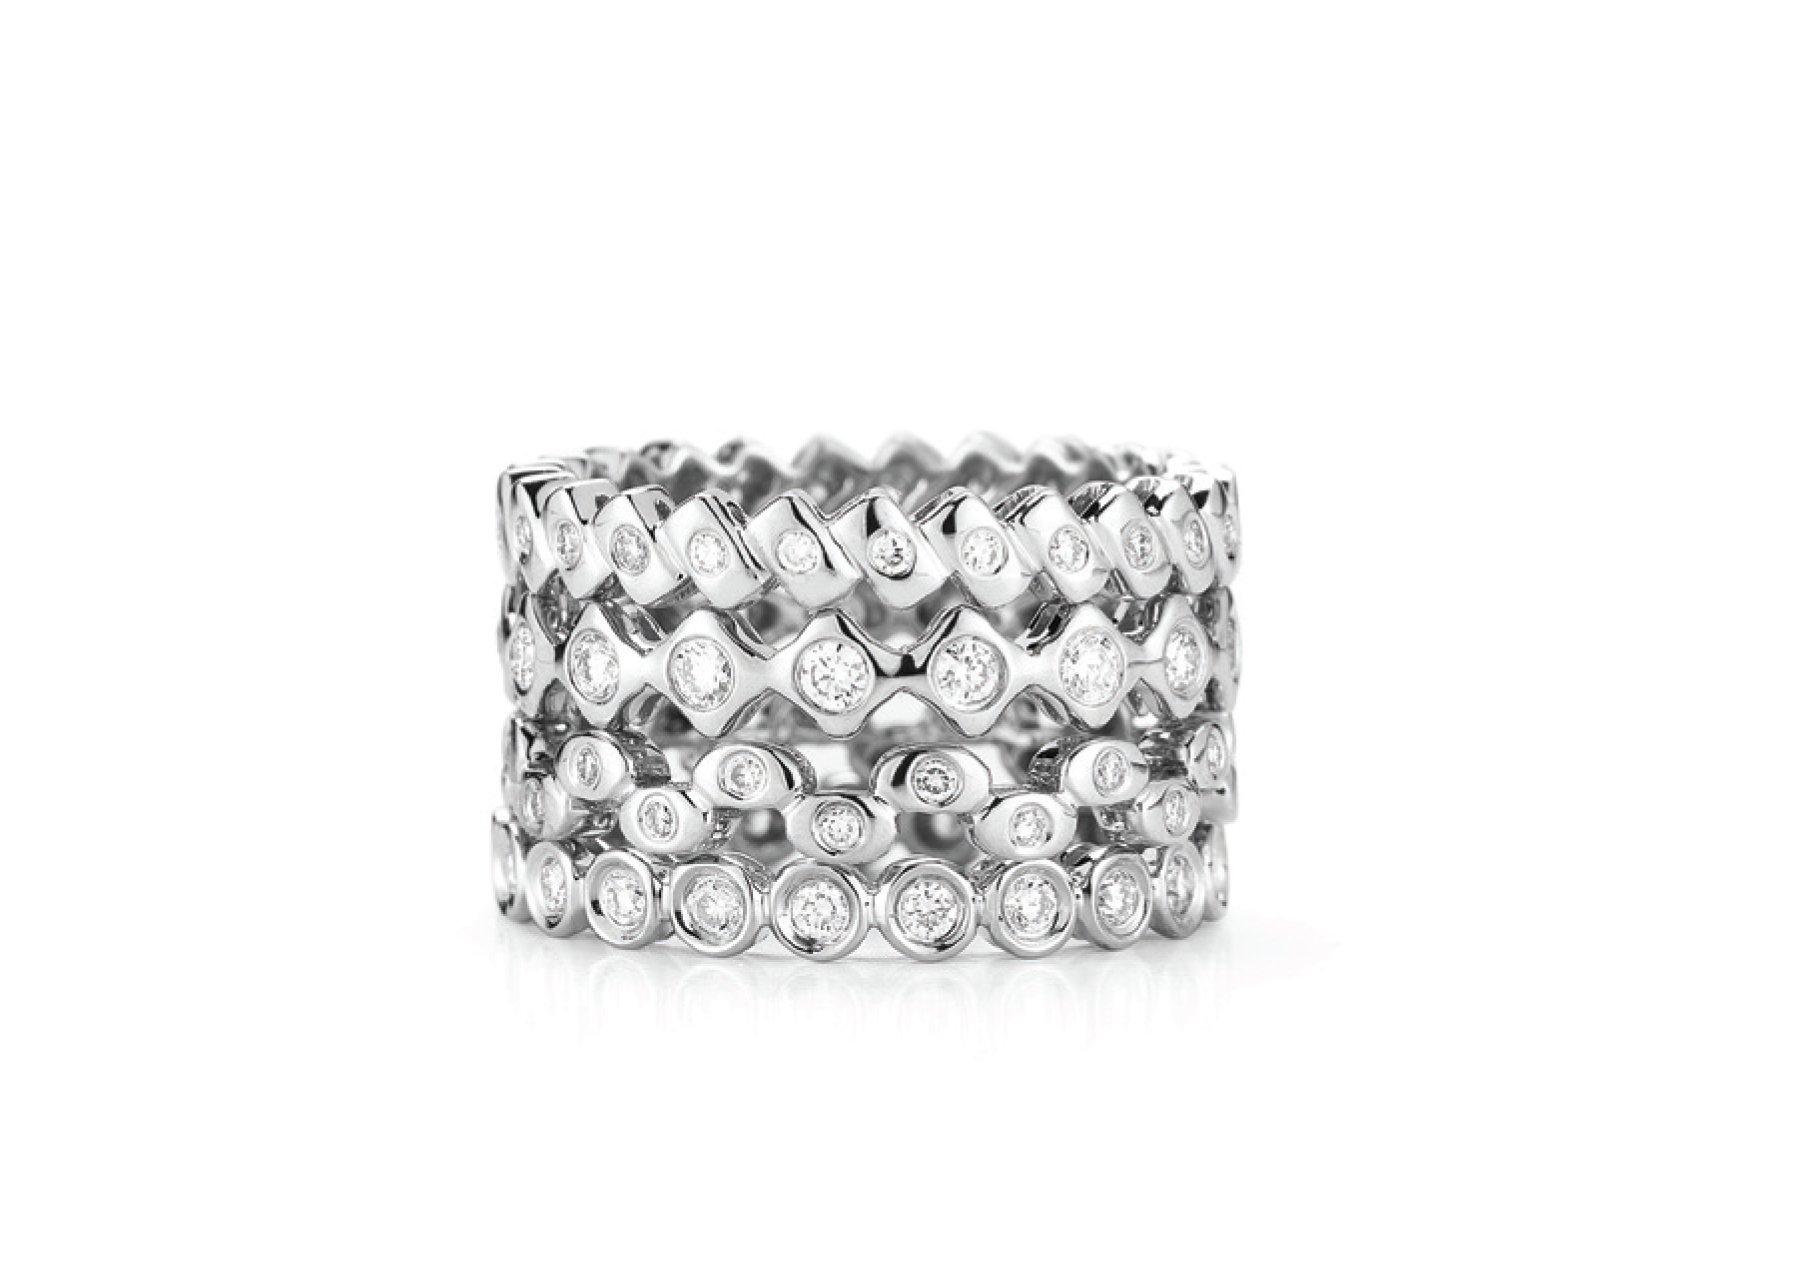 More perfect little diamond eternity bands.